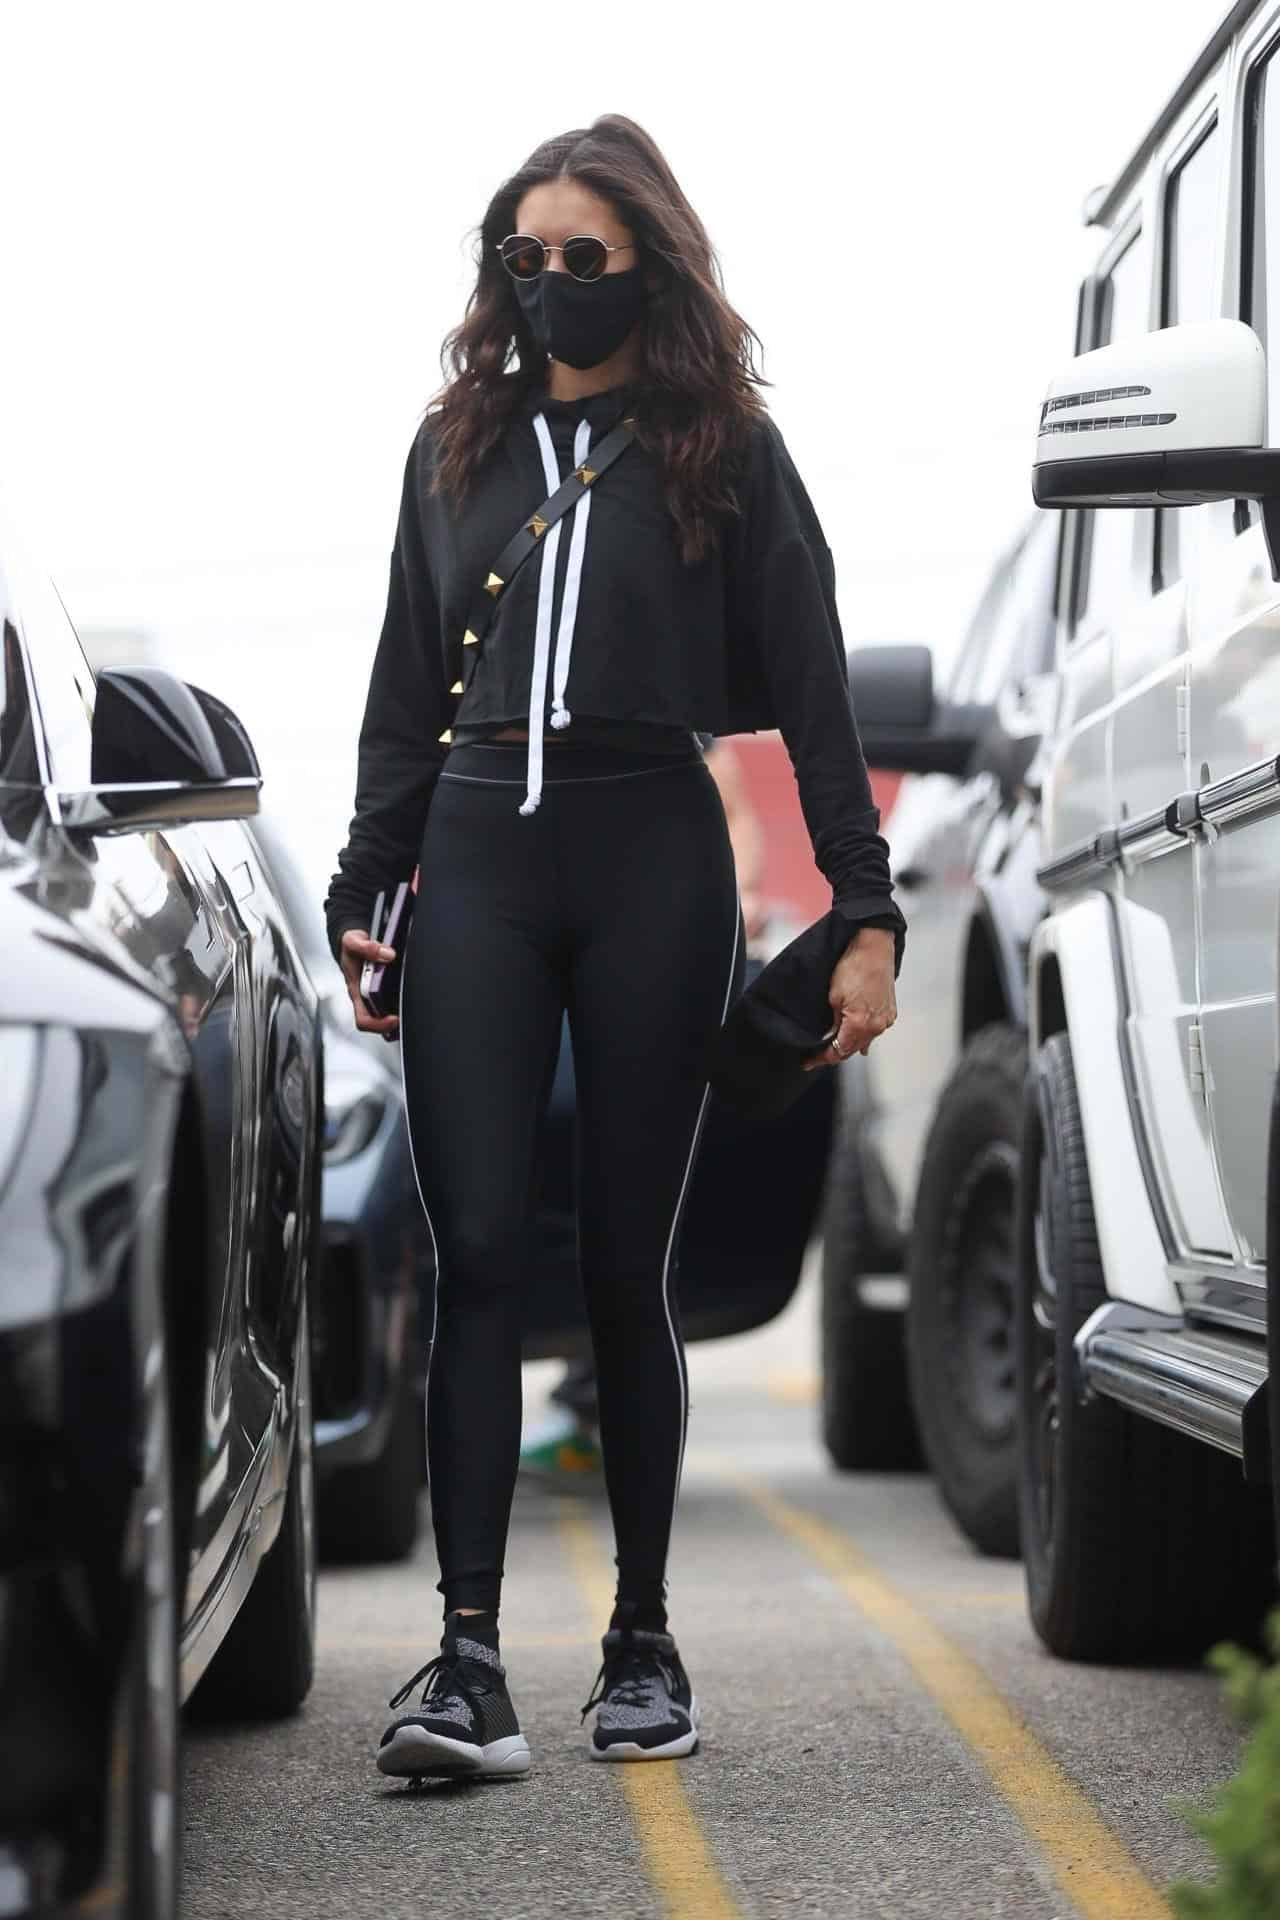 Nina Dobrev Showcases her Svelte Figure in a Black Outfit